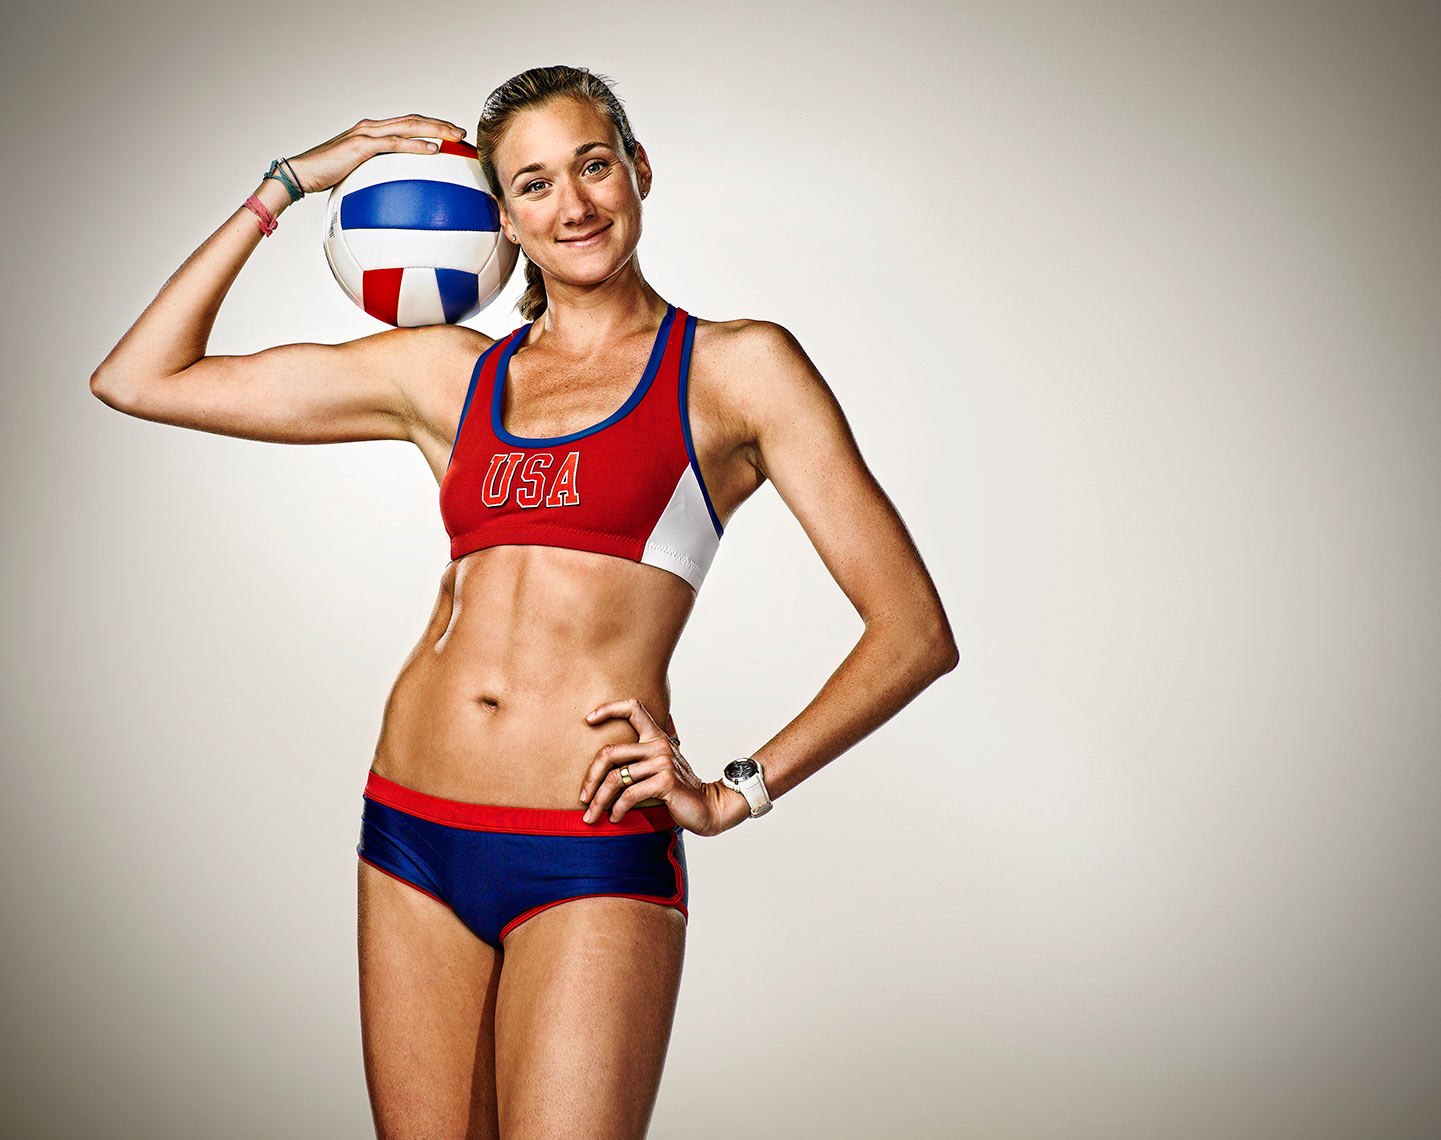 Kerry Walsh - US Olympian - Beach Volleyball